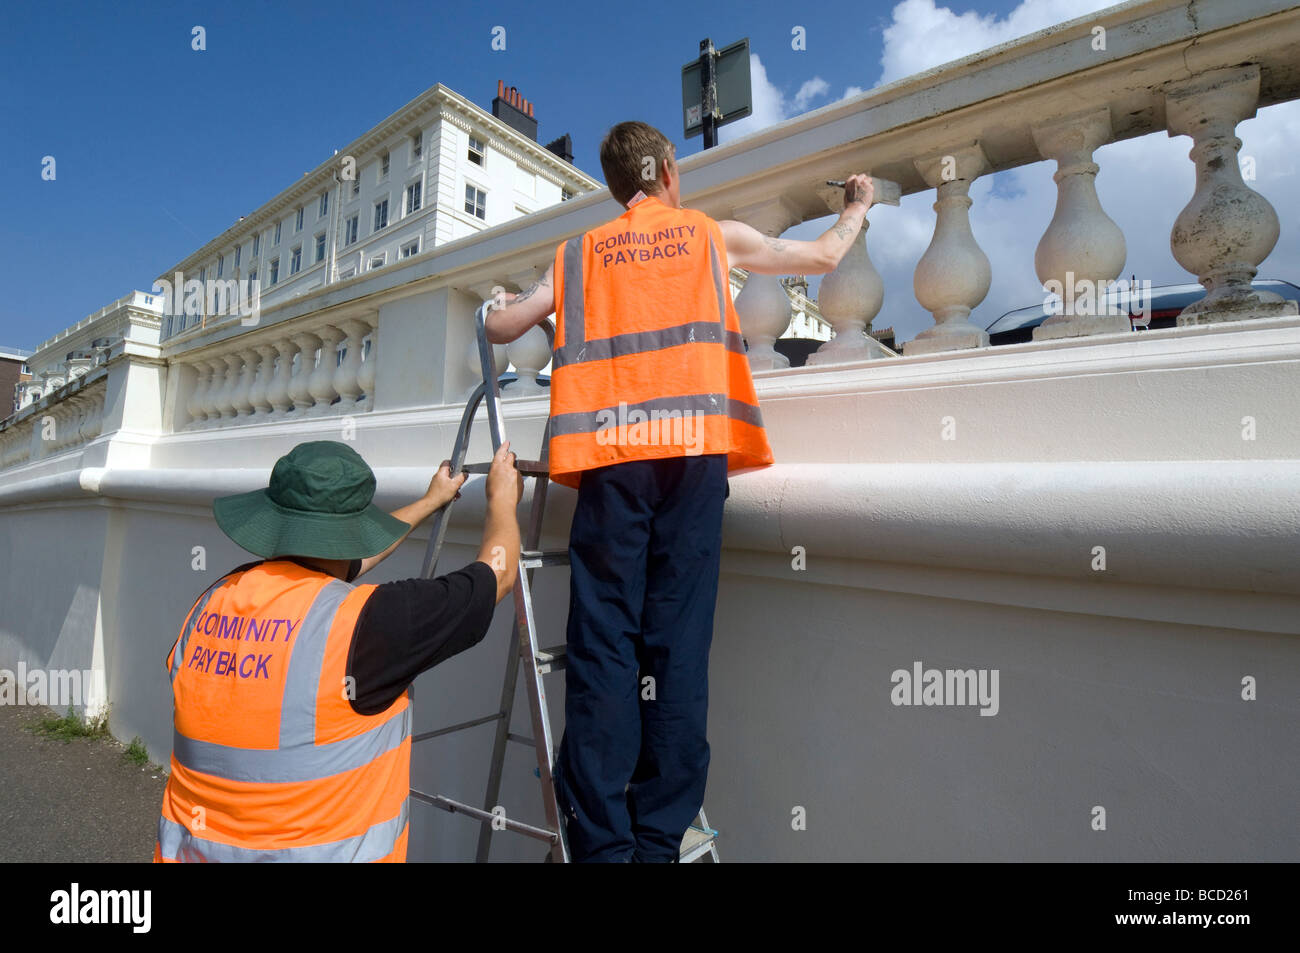 Convicted criminals doing painting and decorating in orange tabards with community payback slogan on the back - Stock Image